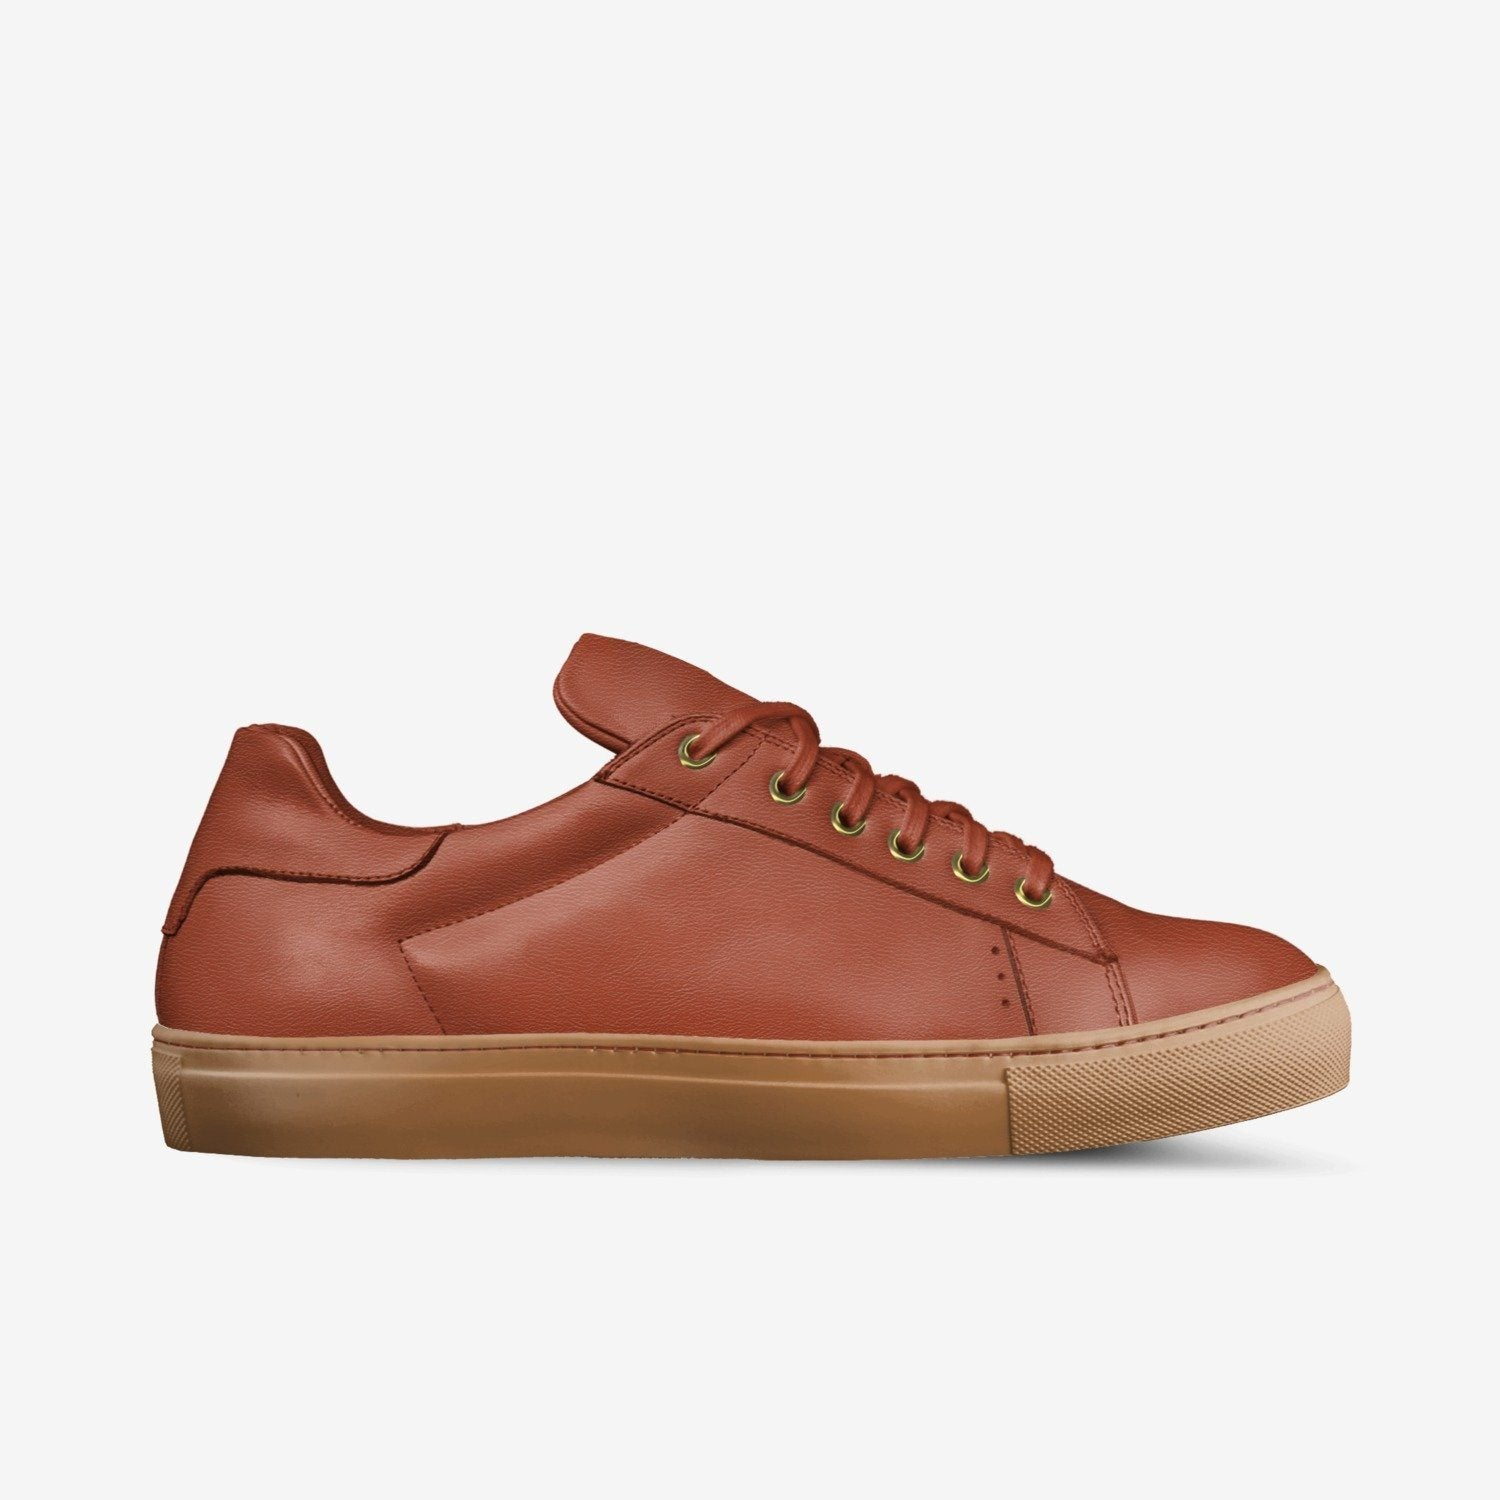 LORENZO LEATHER/GUM SOLE SNEAKERS IN VERMILLION | Poor Little Rich Boy Clothing